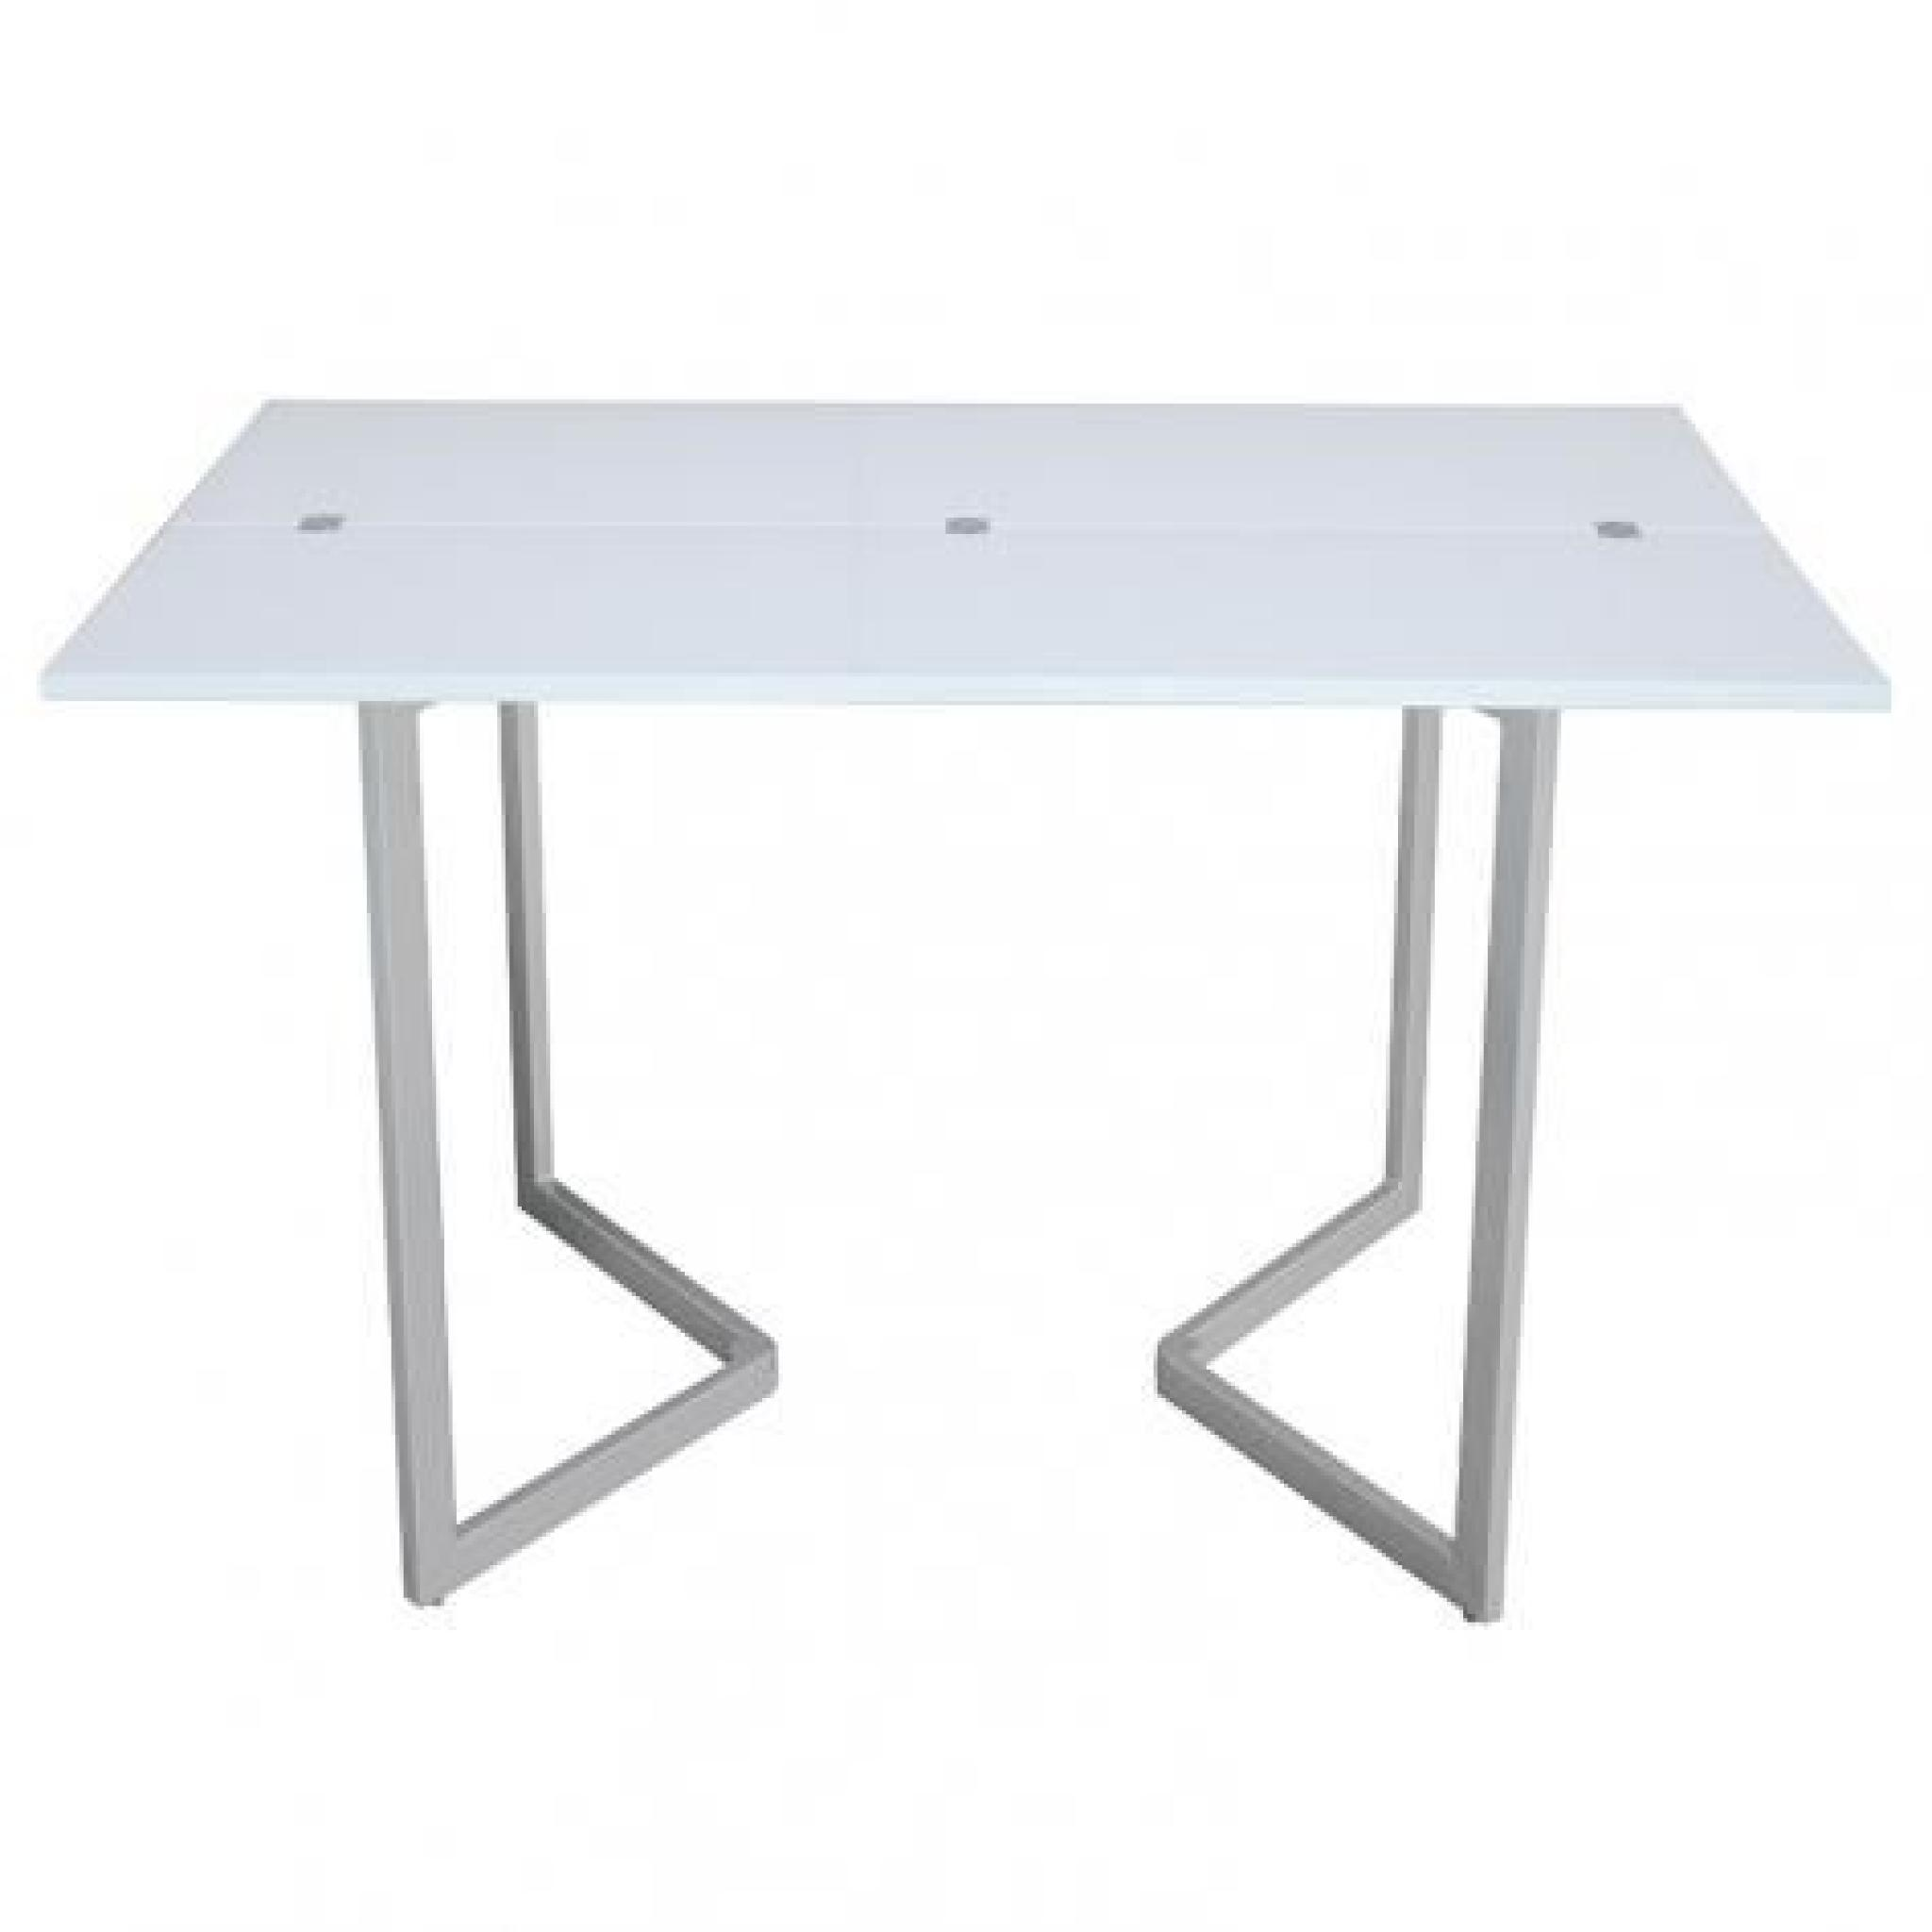 table console extensible blanche laque talia - Table Console Extensible Blanc Laque